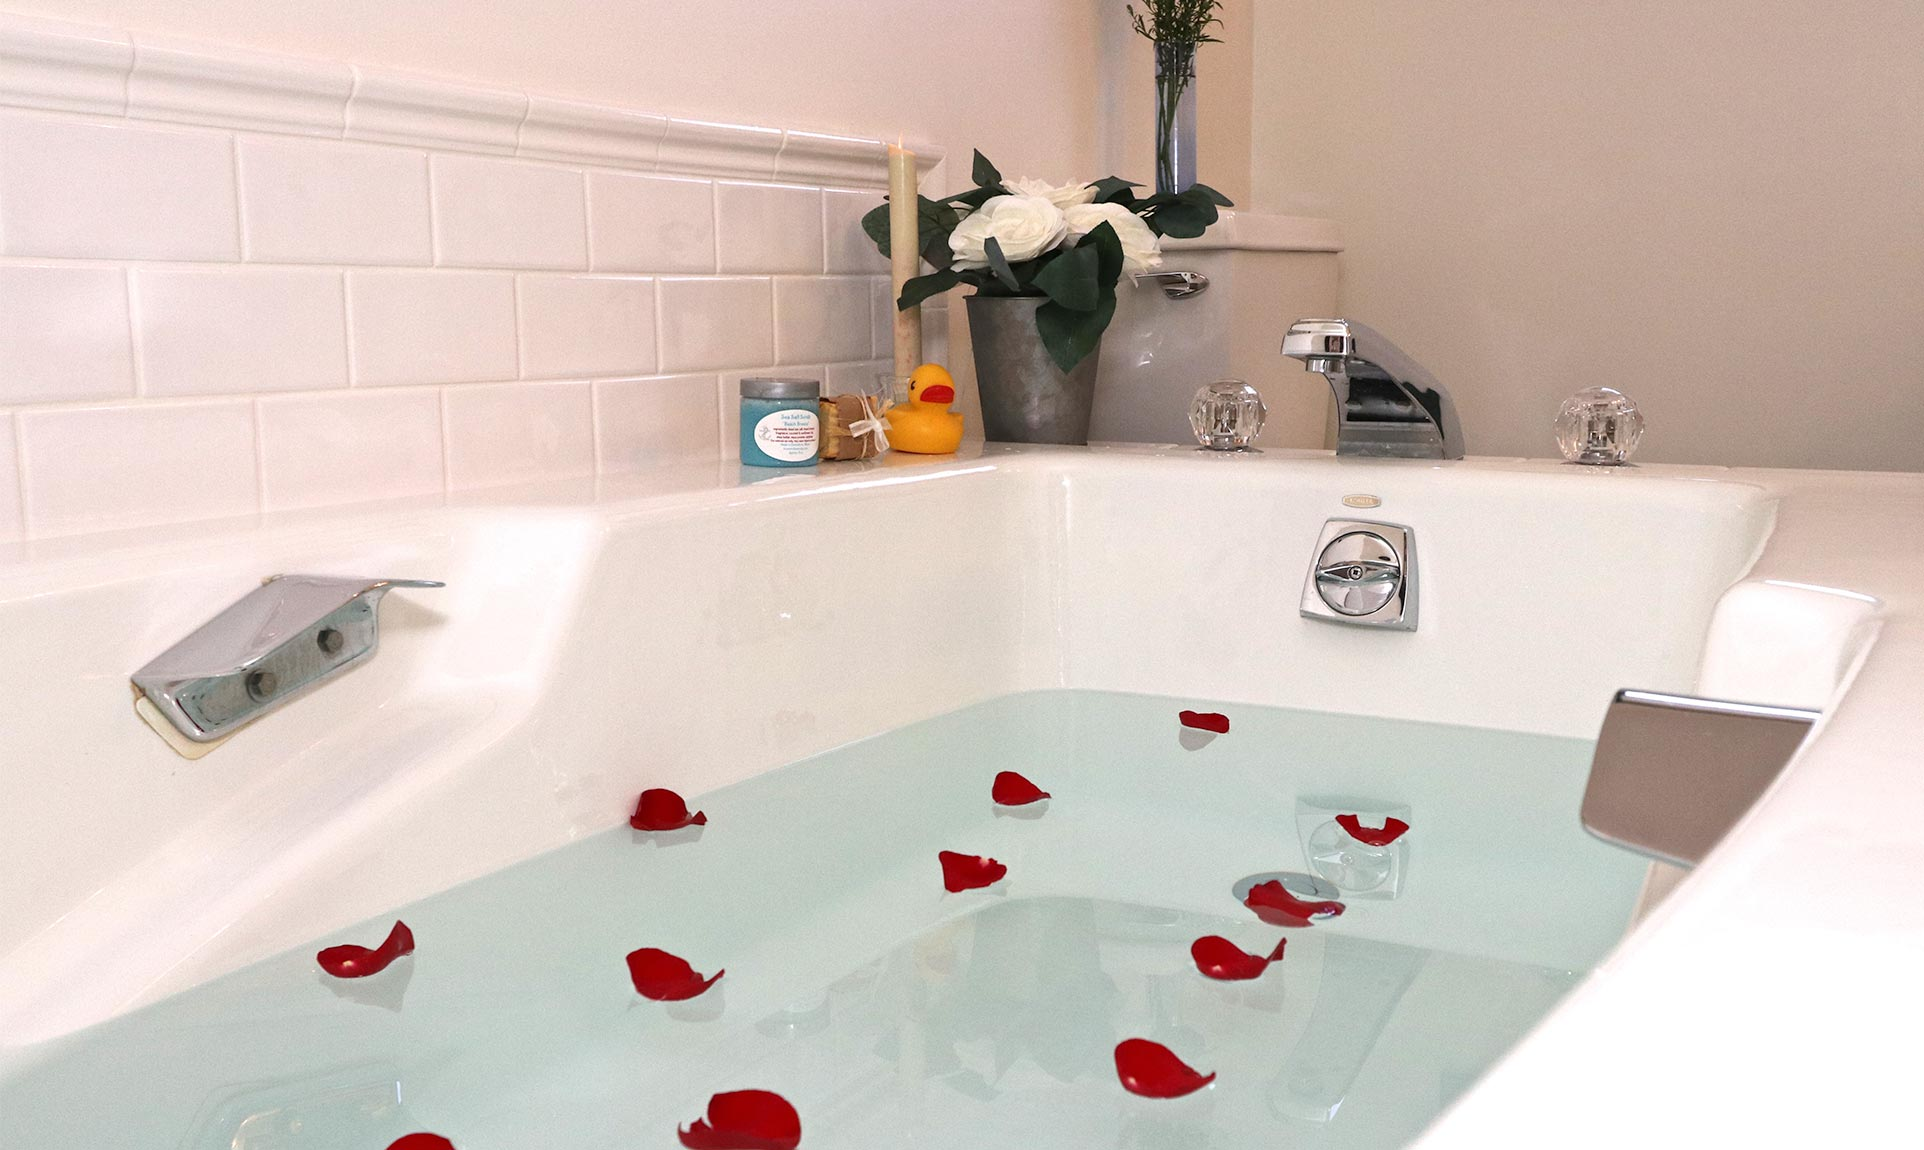 A large soaking tub filled with water and rose petals